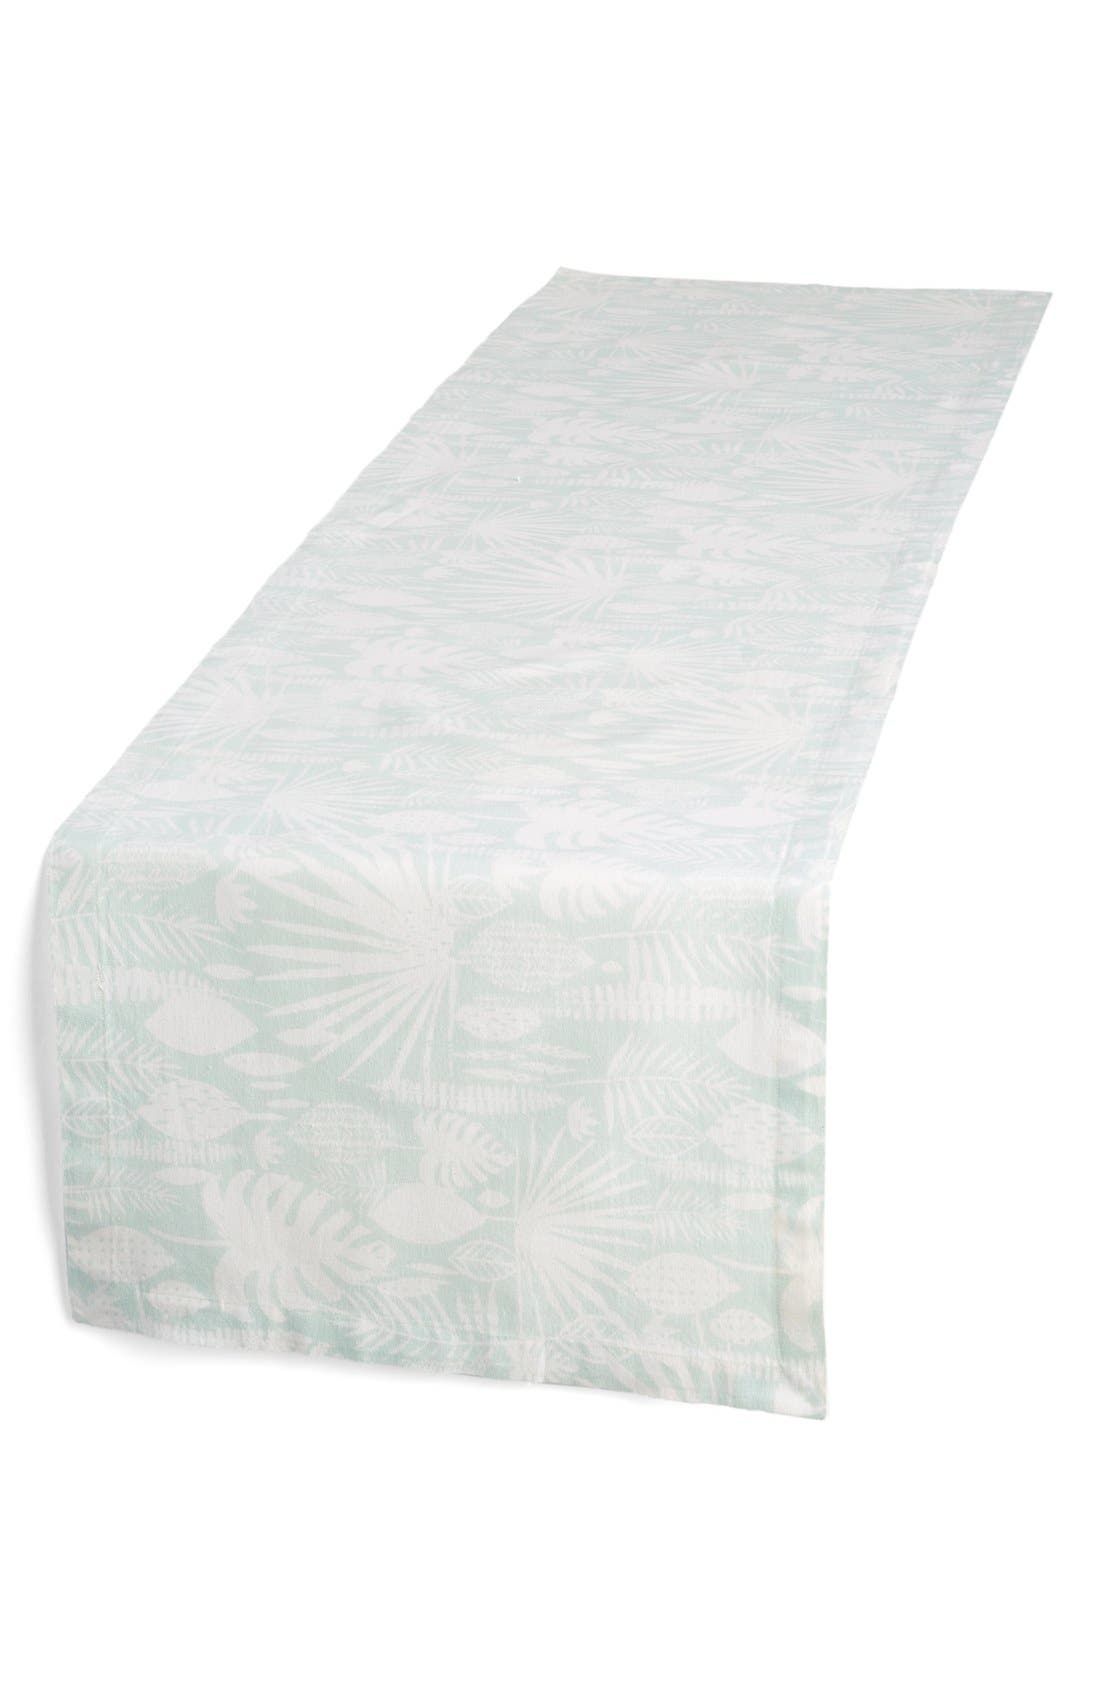 Minted Tropical Leaves Table Runner